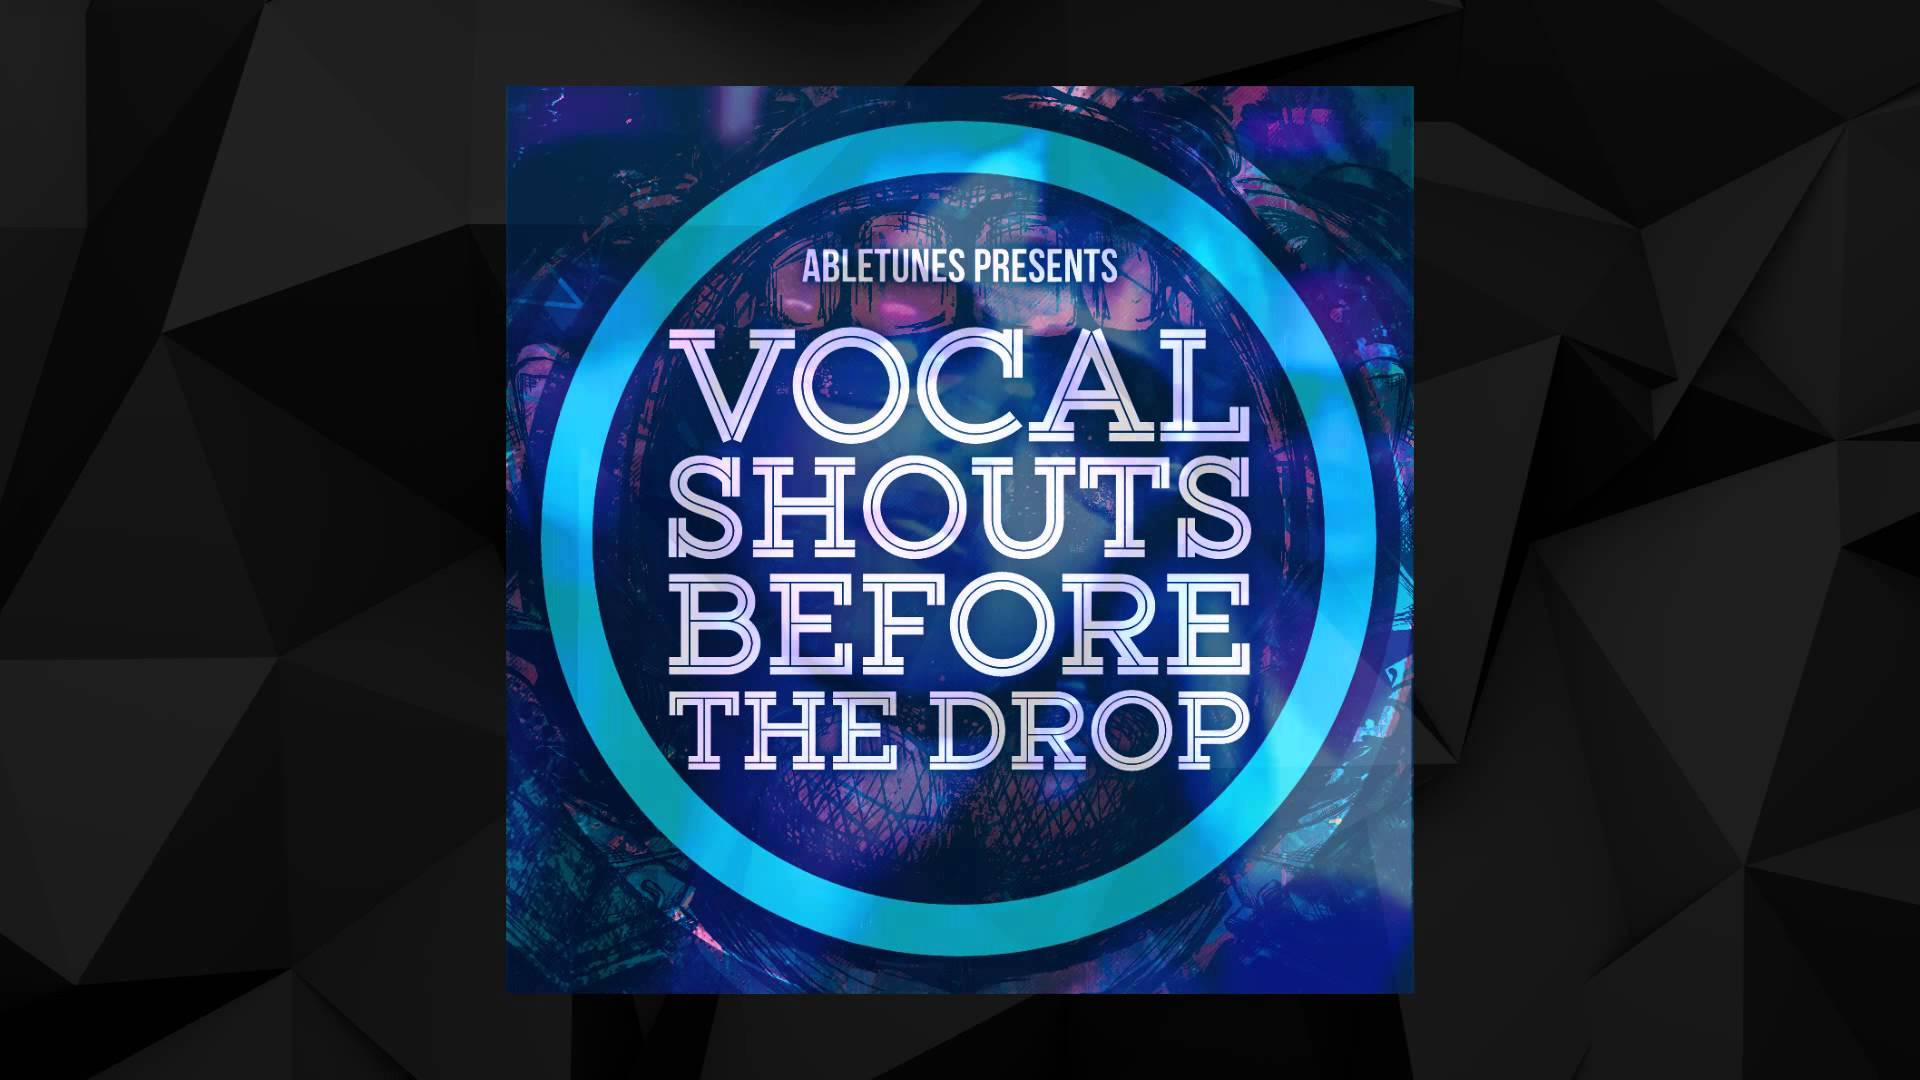 Vocals Shouts Before The Drop